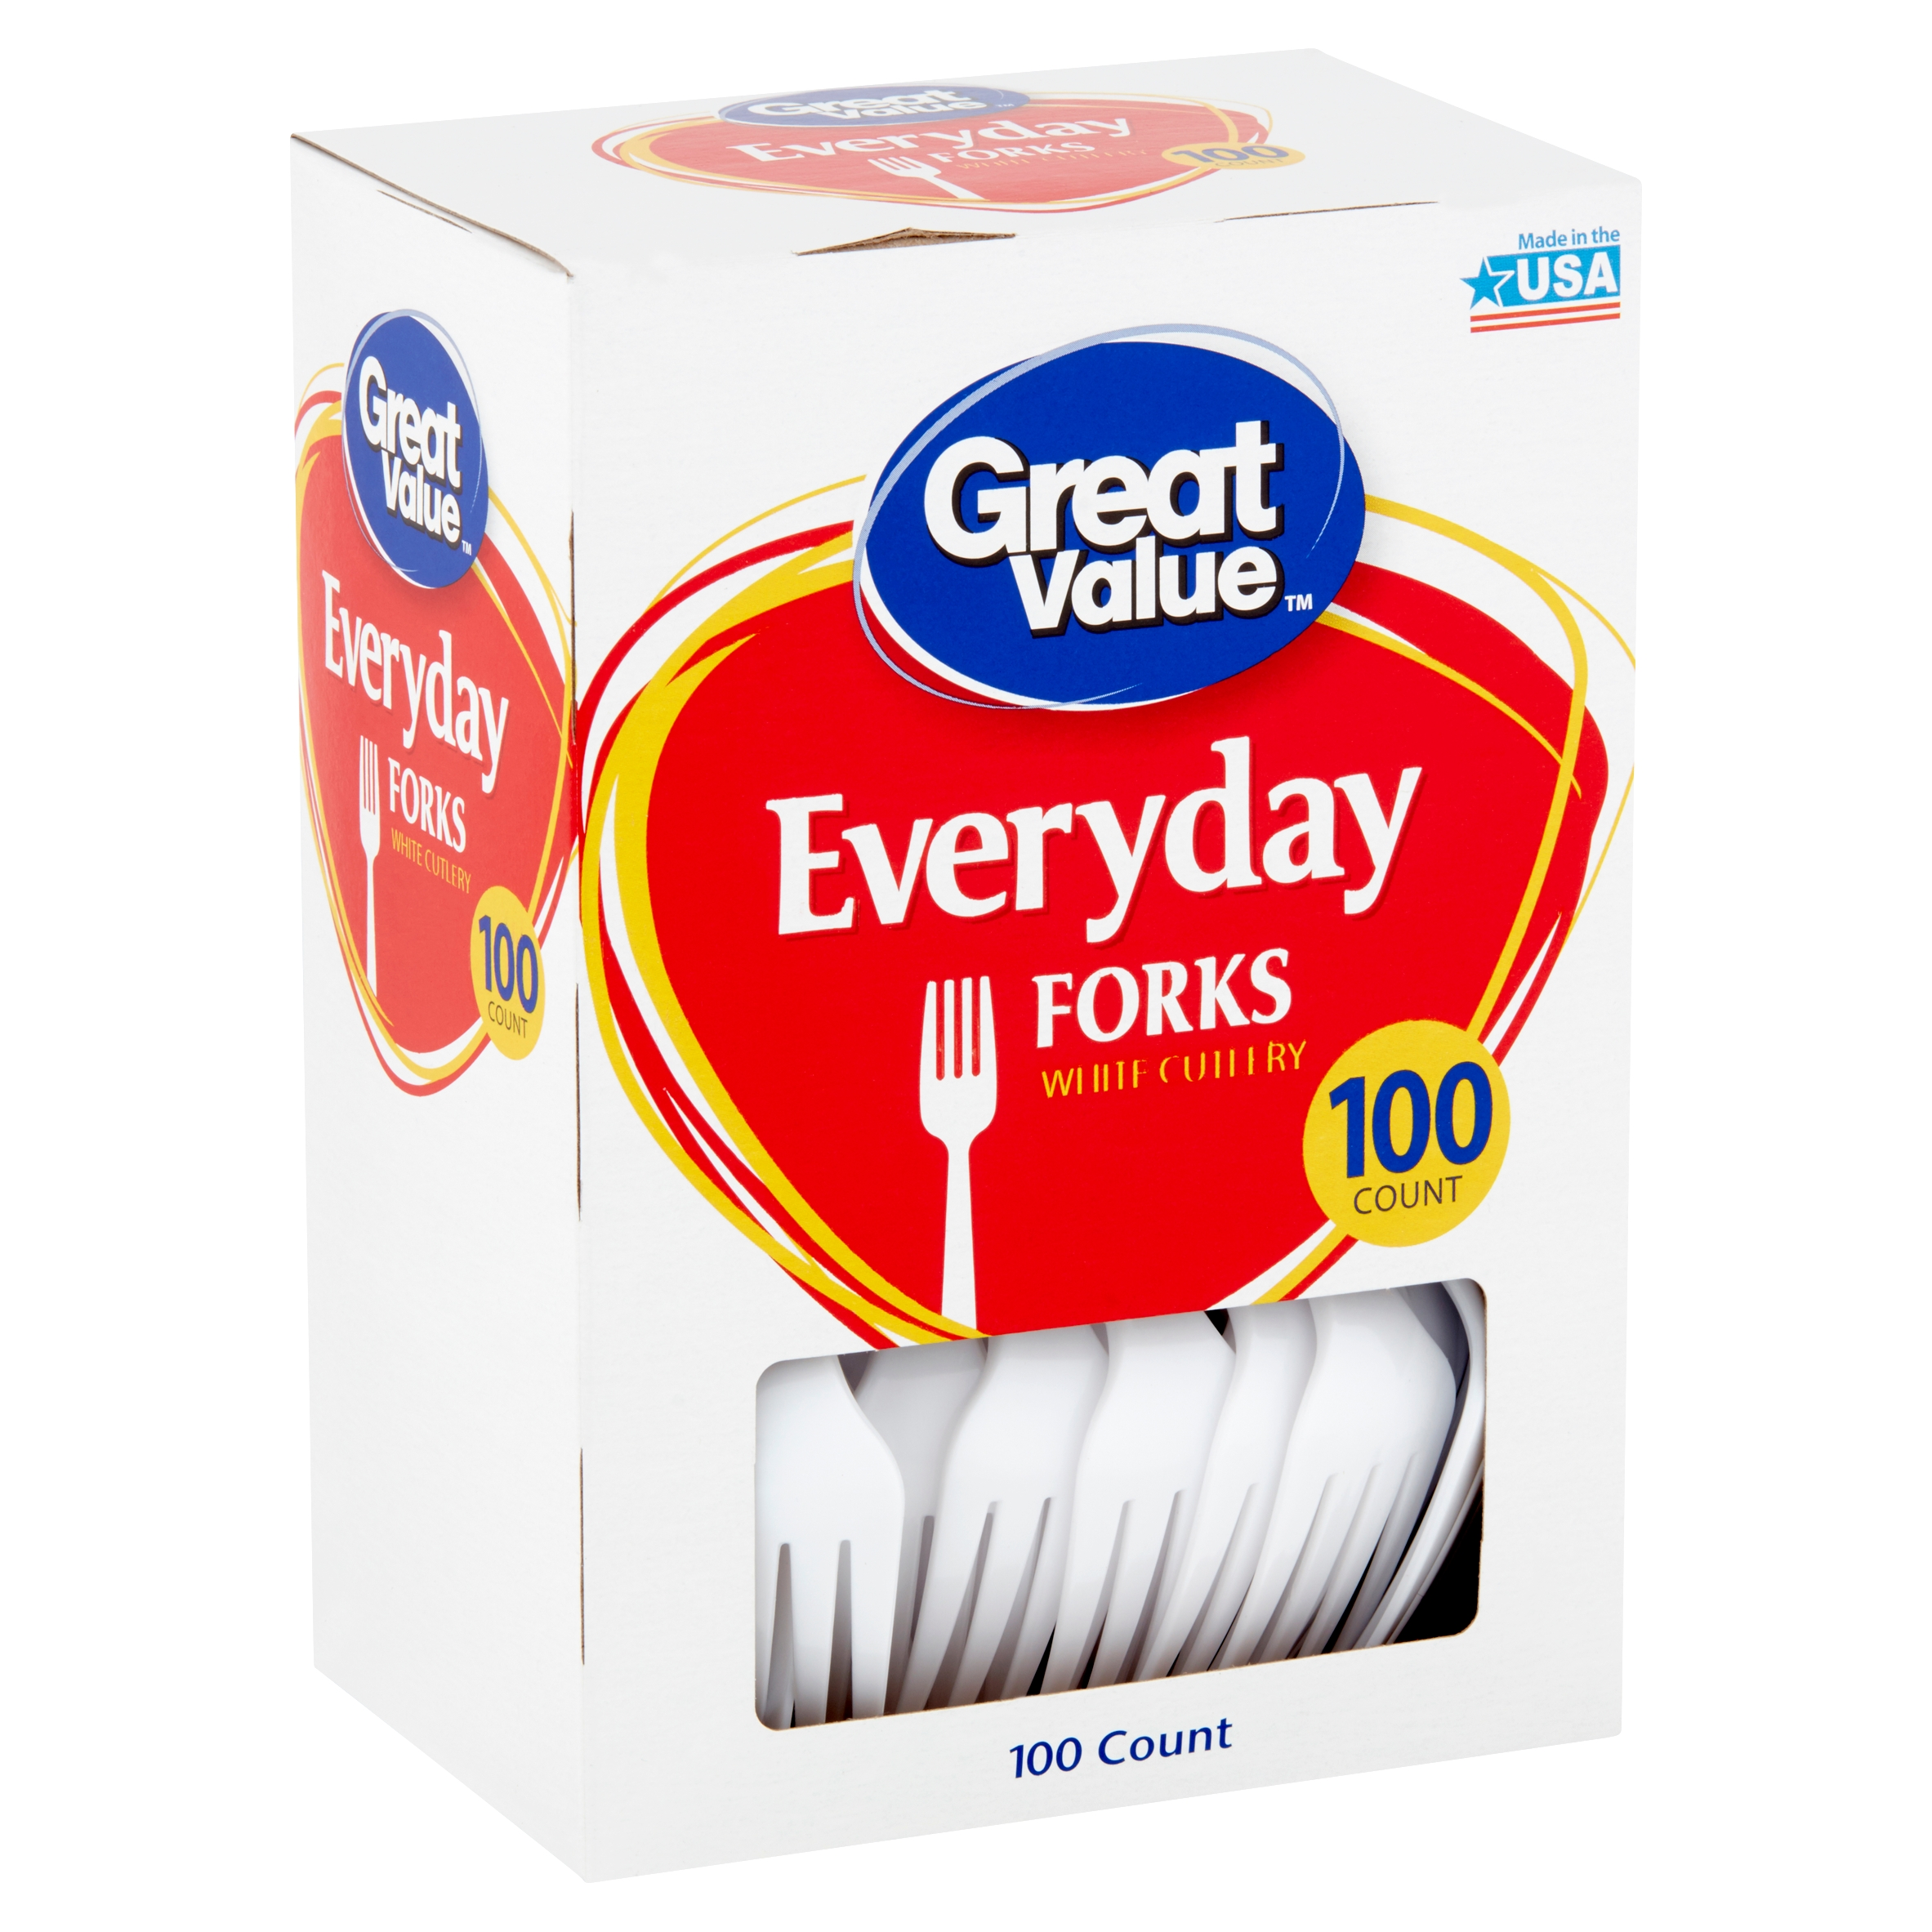 Great Value Everyday White Cutlery Forks, 100 count